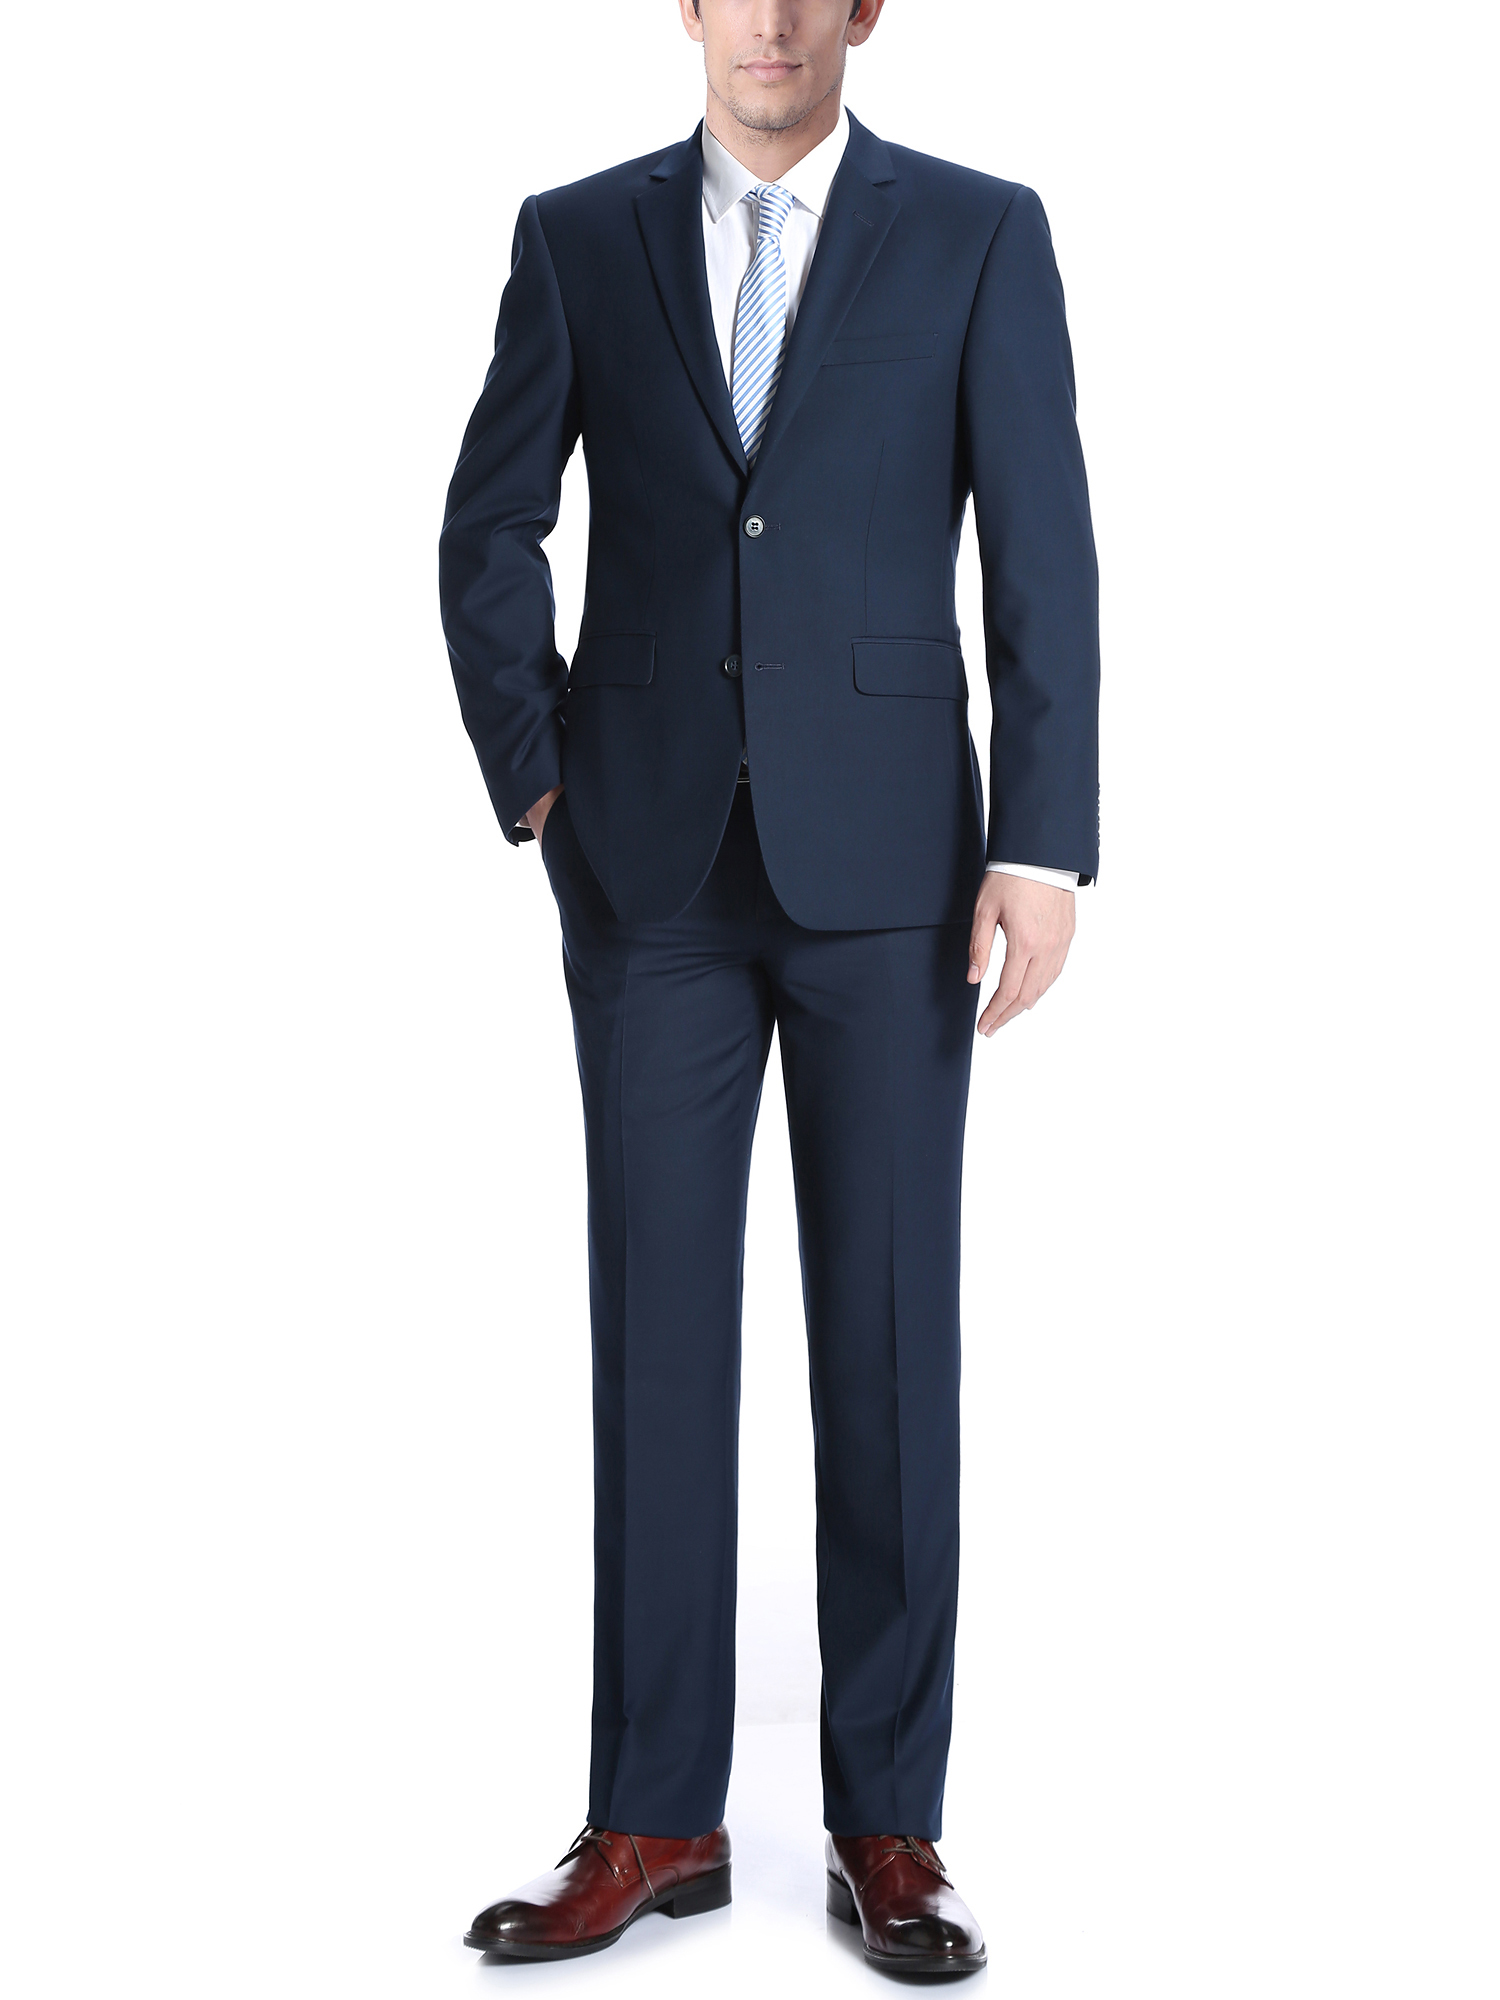 Campana Men's Navy Classic Fit Italian Styled Two Piece Suit